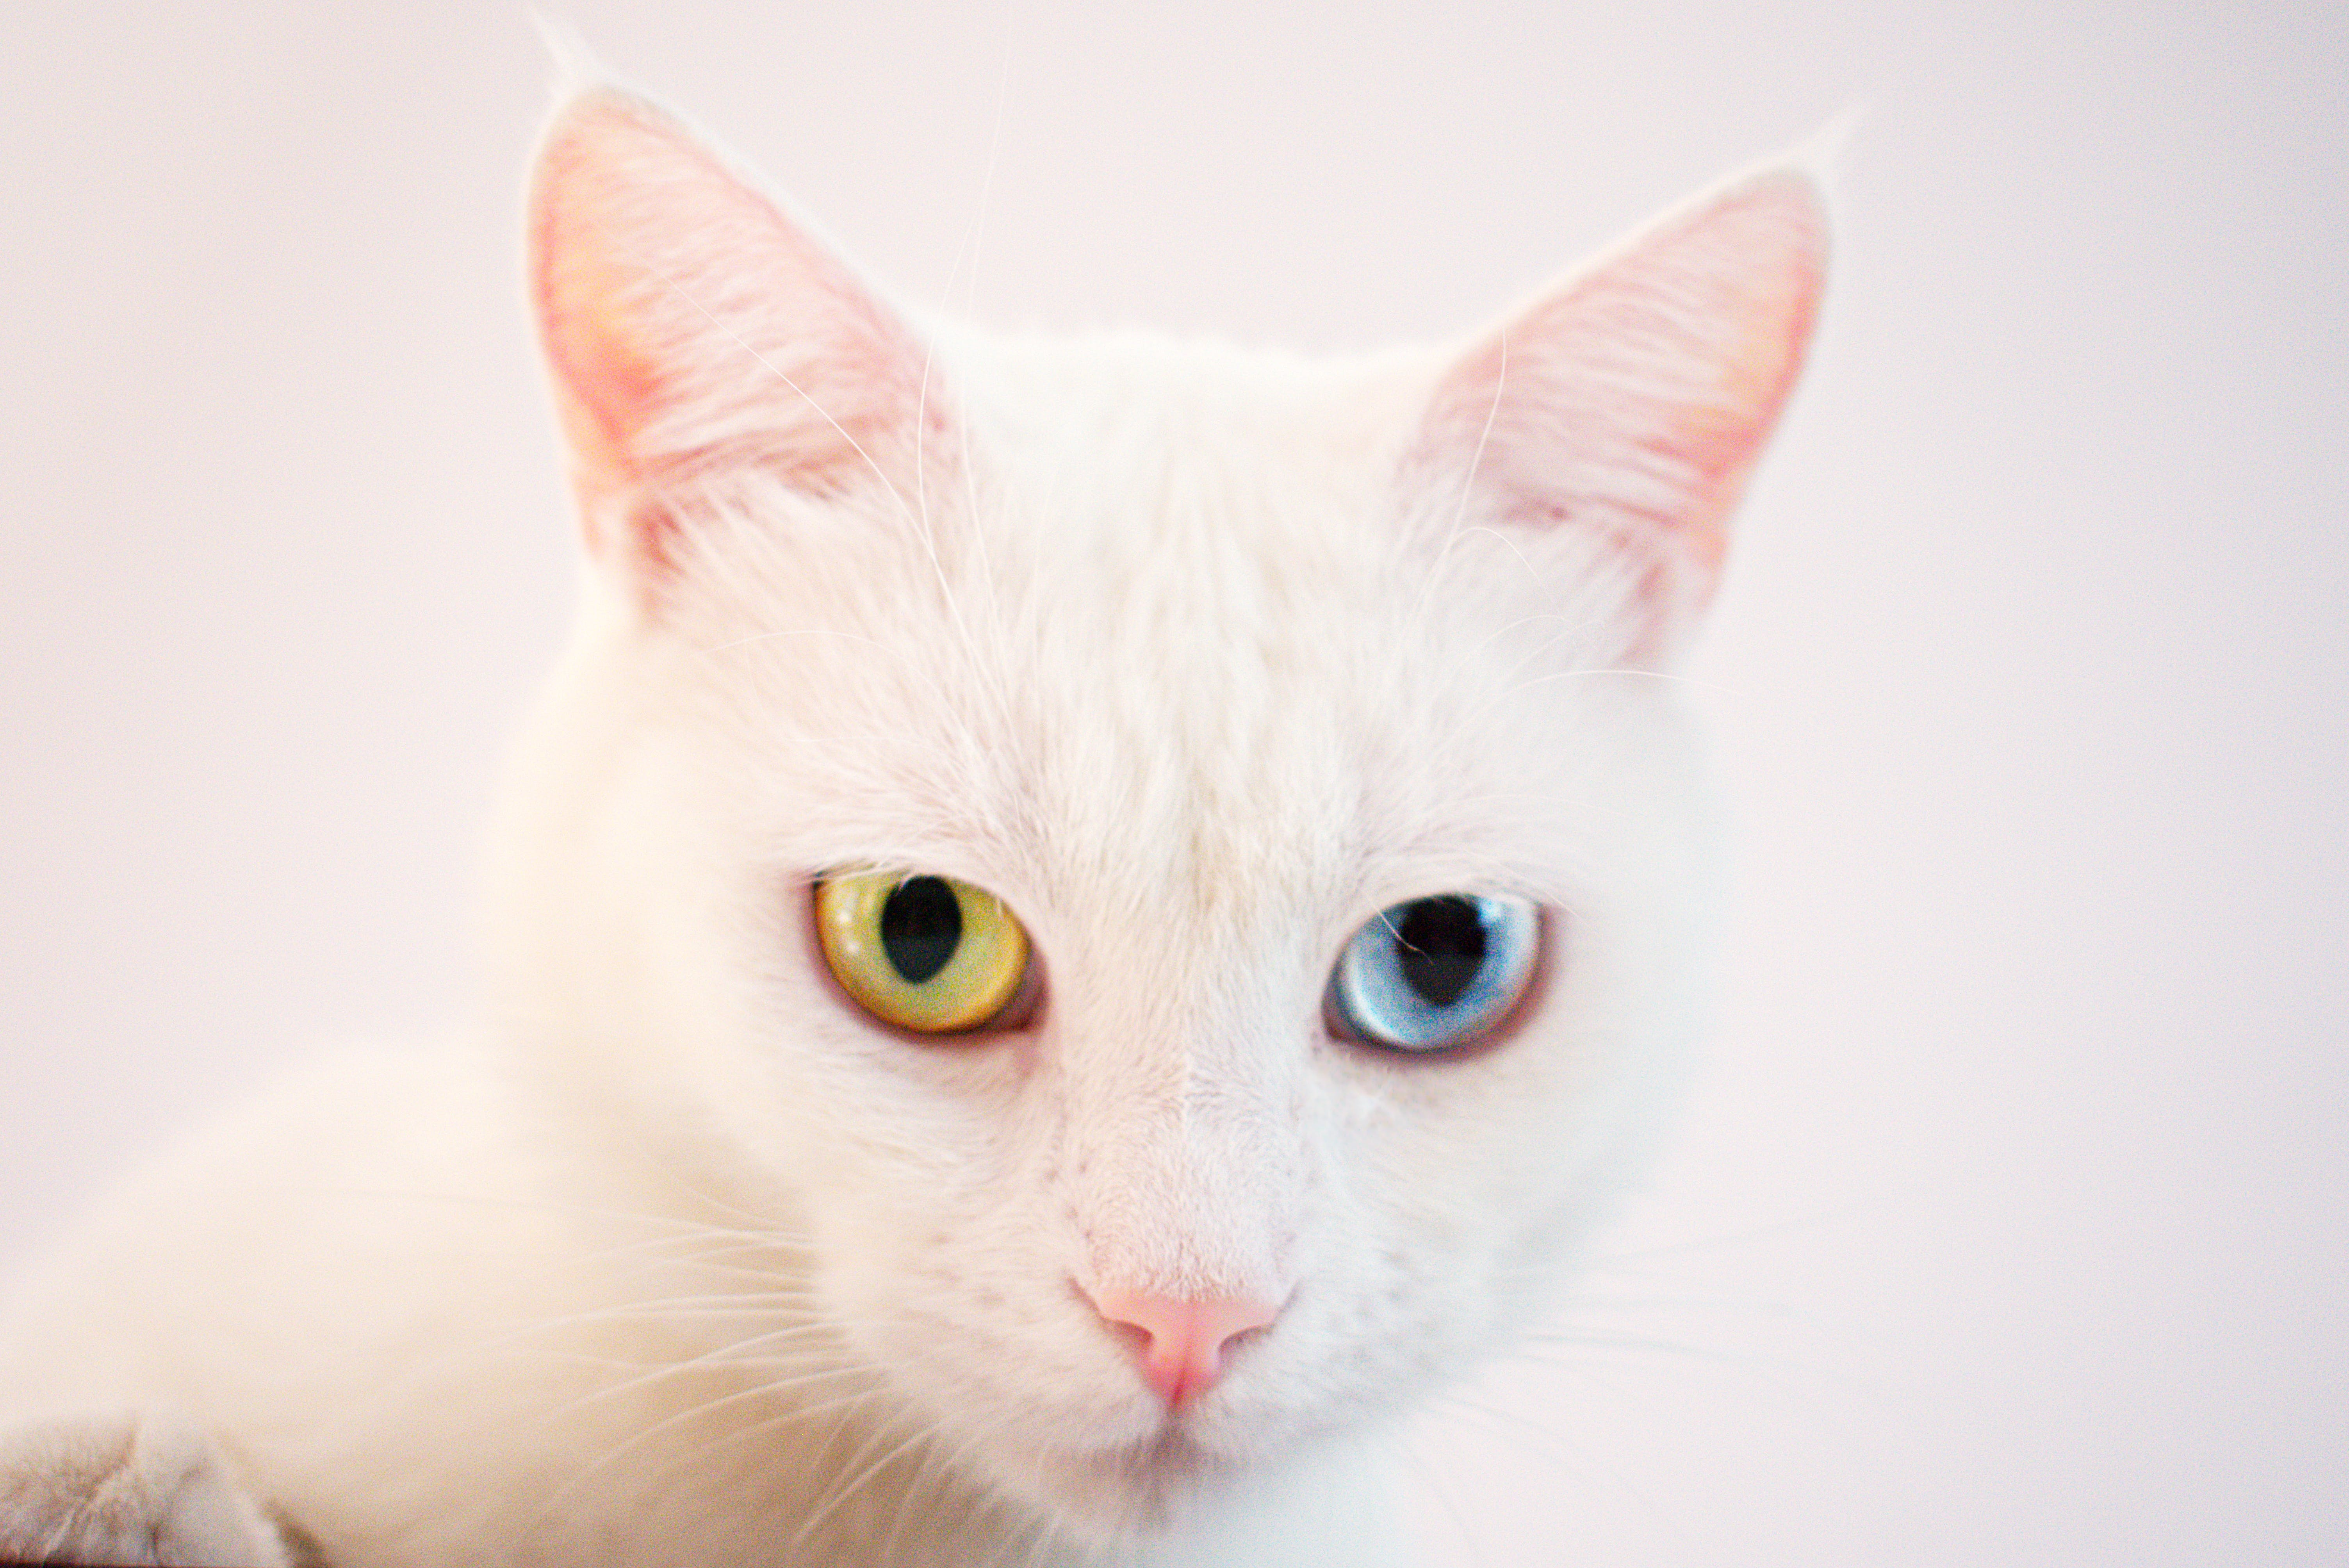 Close-up Photography of Short-furred White Cat